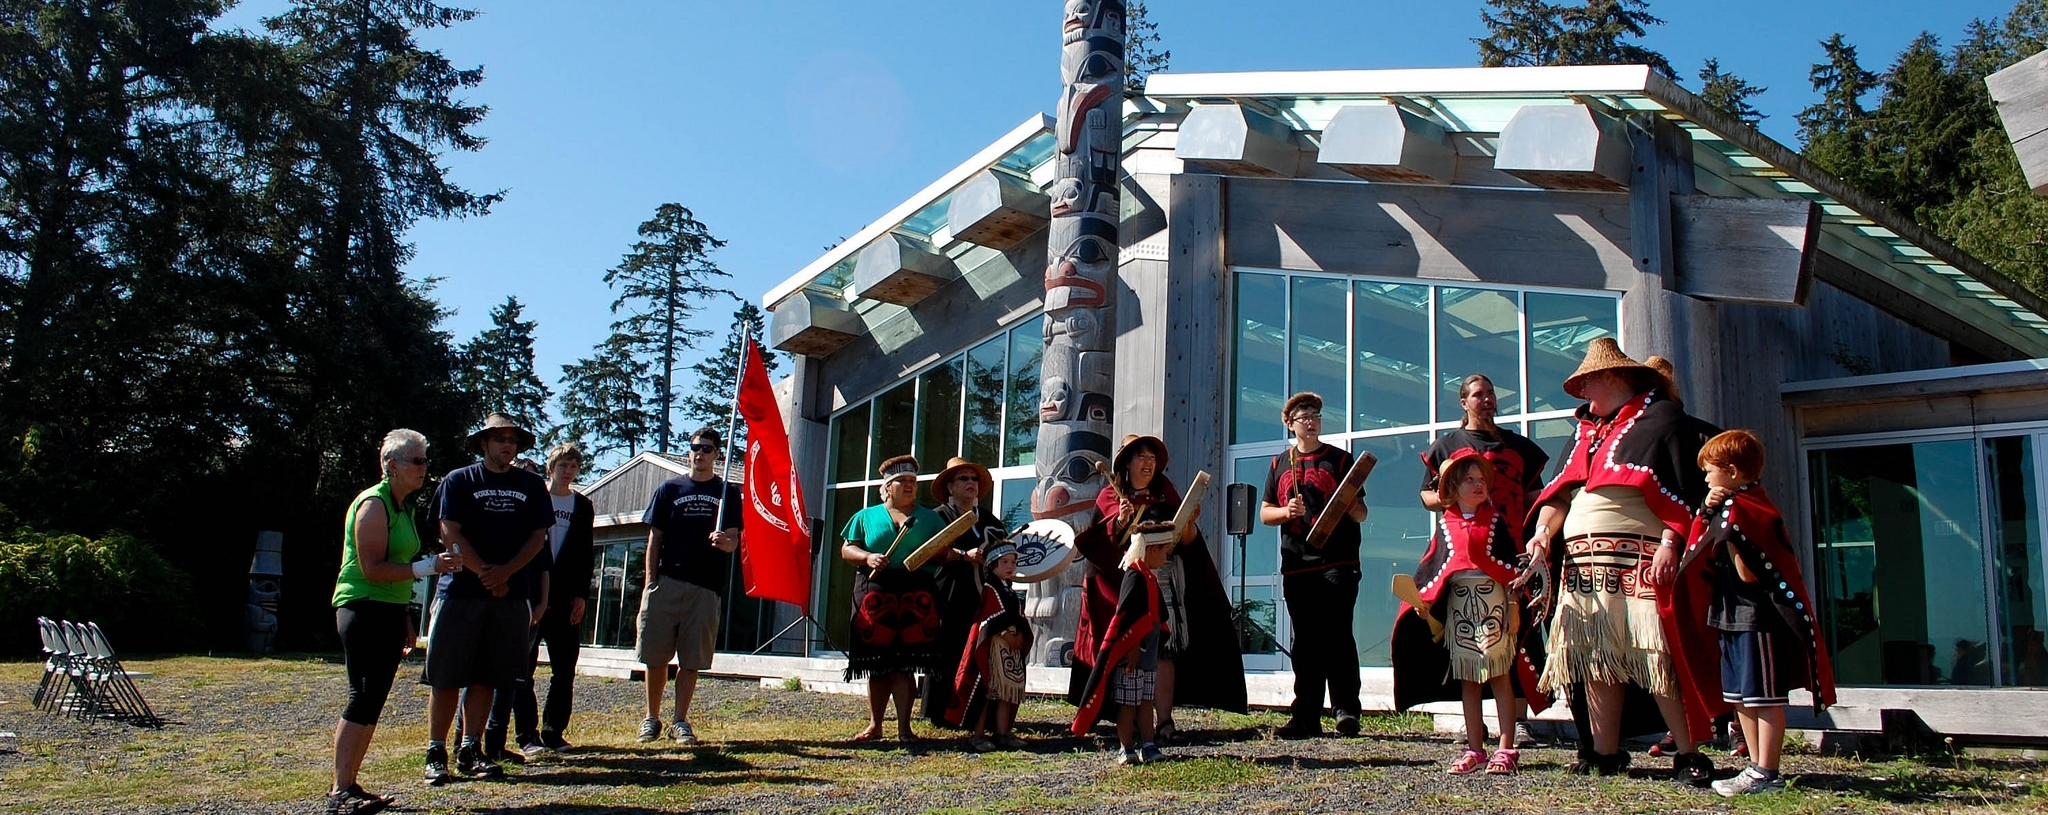 The Haida Heritage Centre in Skidegate is a must-see!